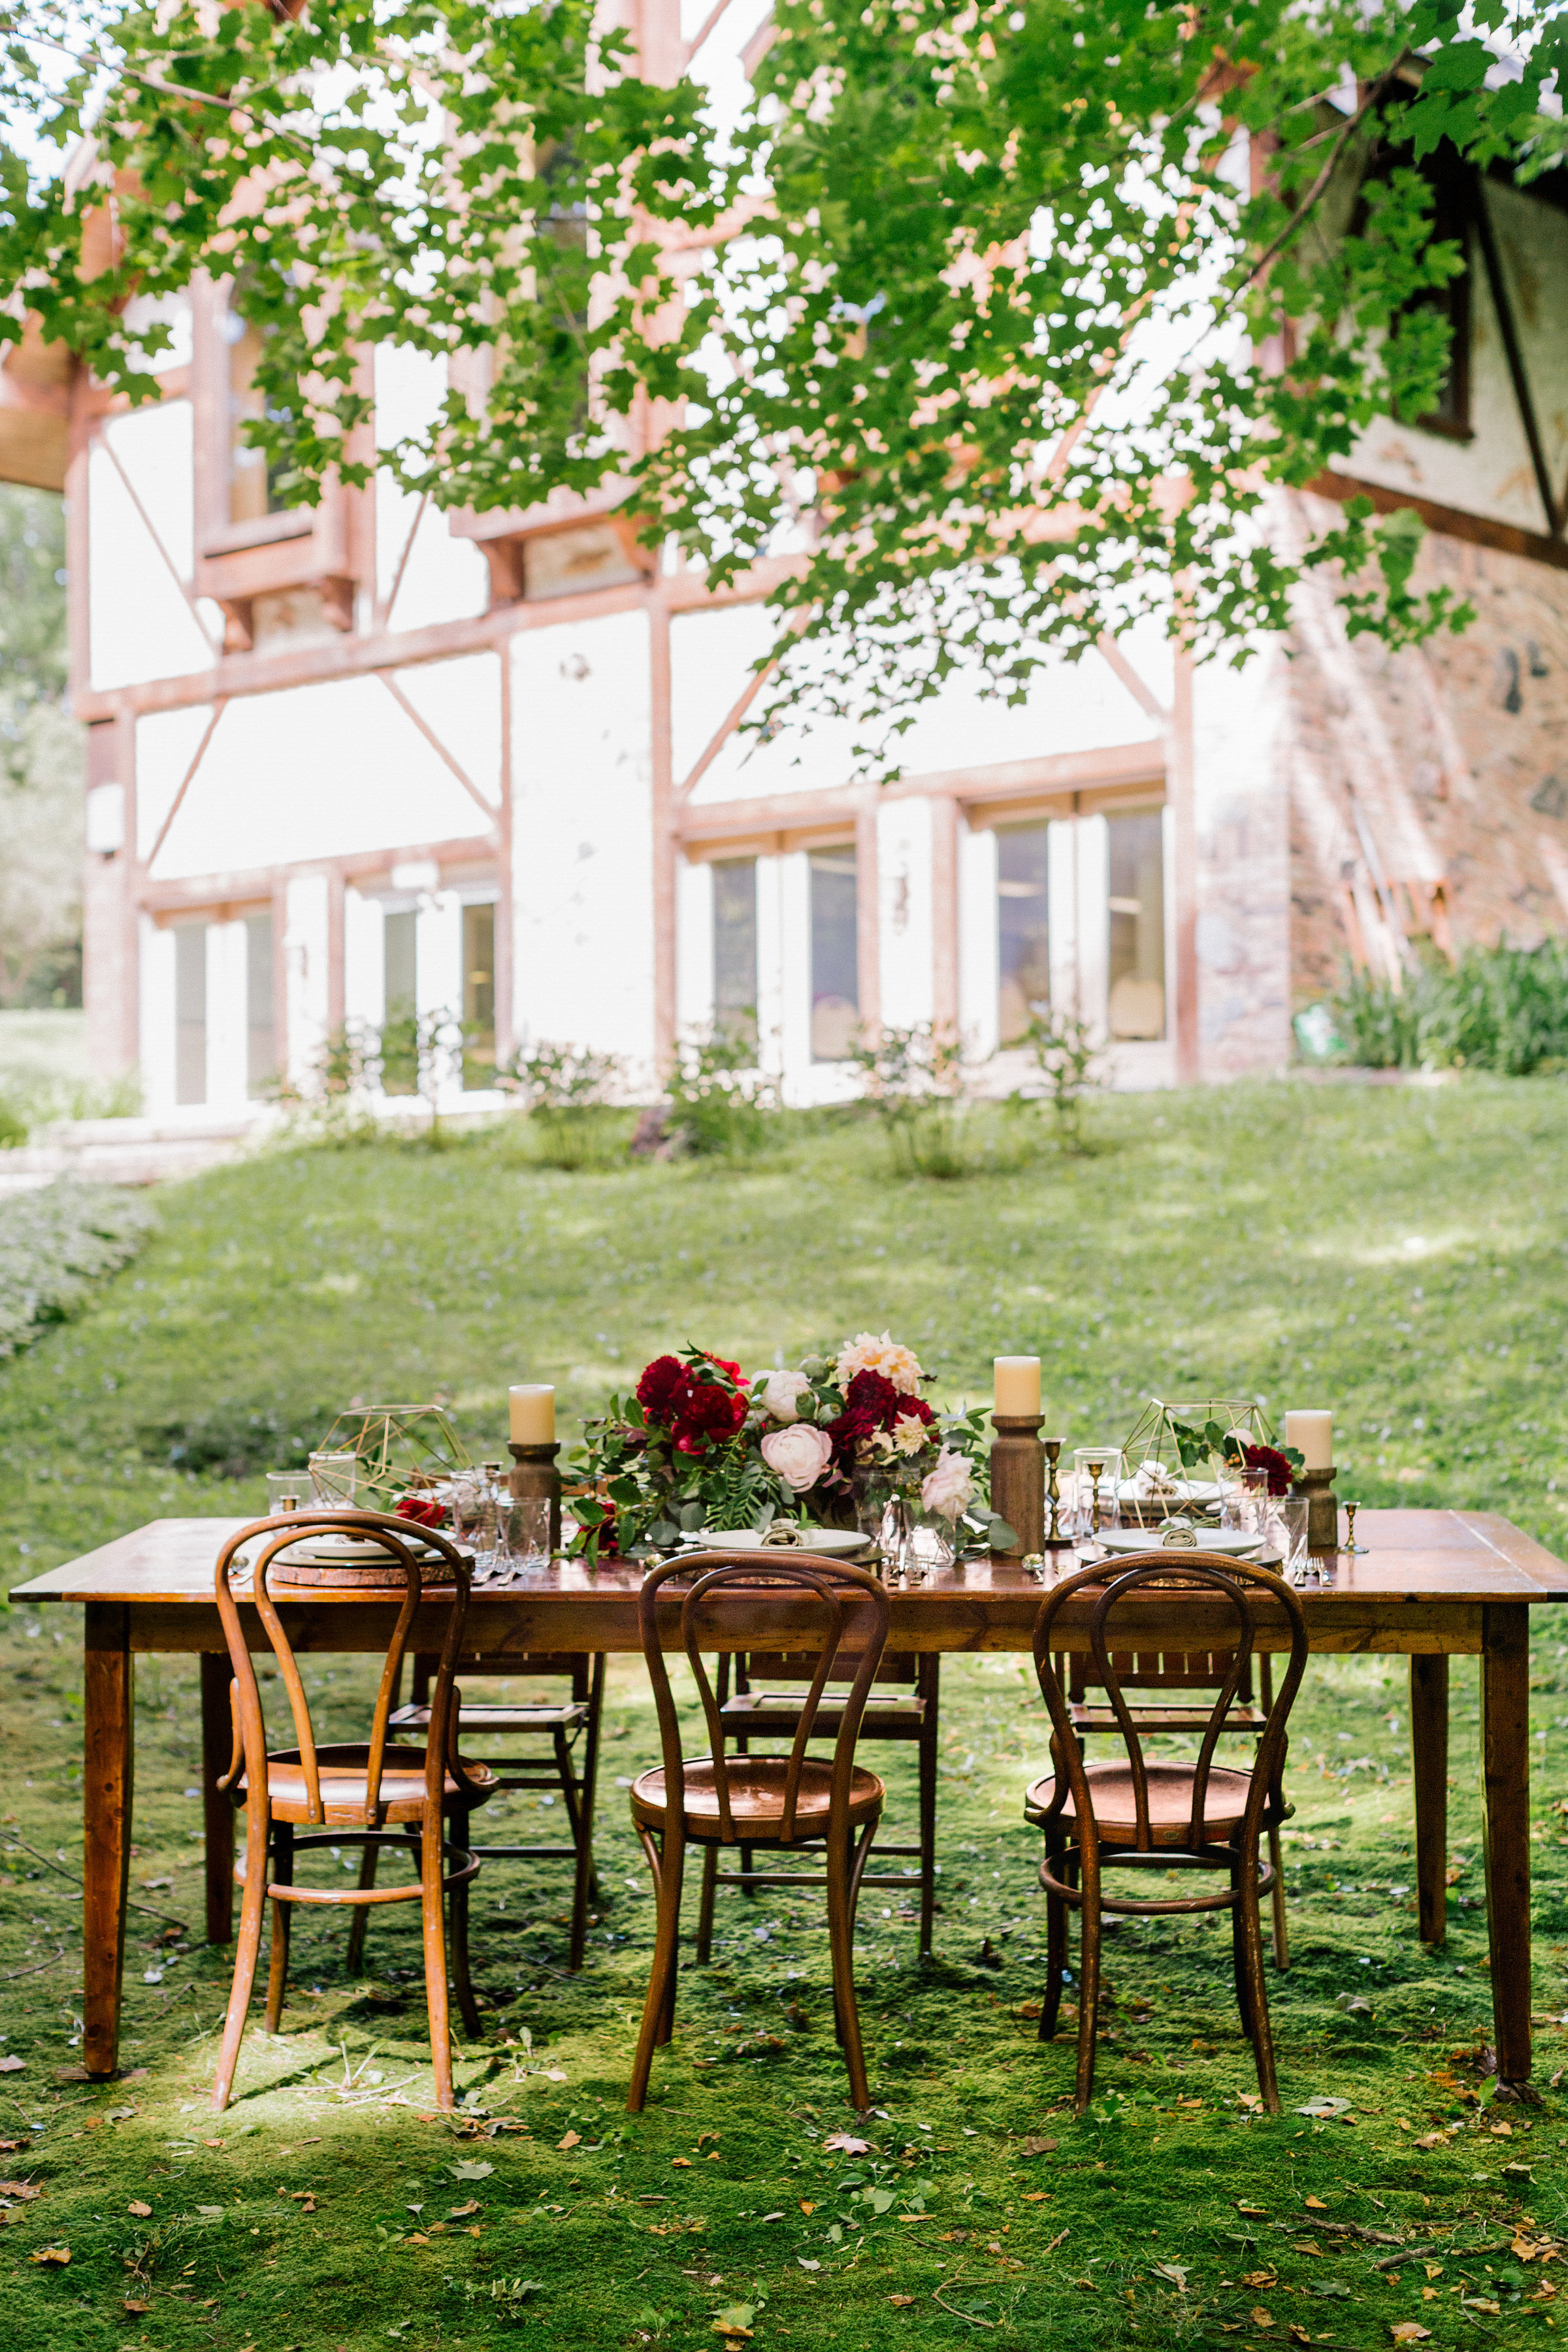 Allison_Hopperstad_Photography_Acowsay_Wedding_table_setting2.JPG